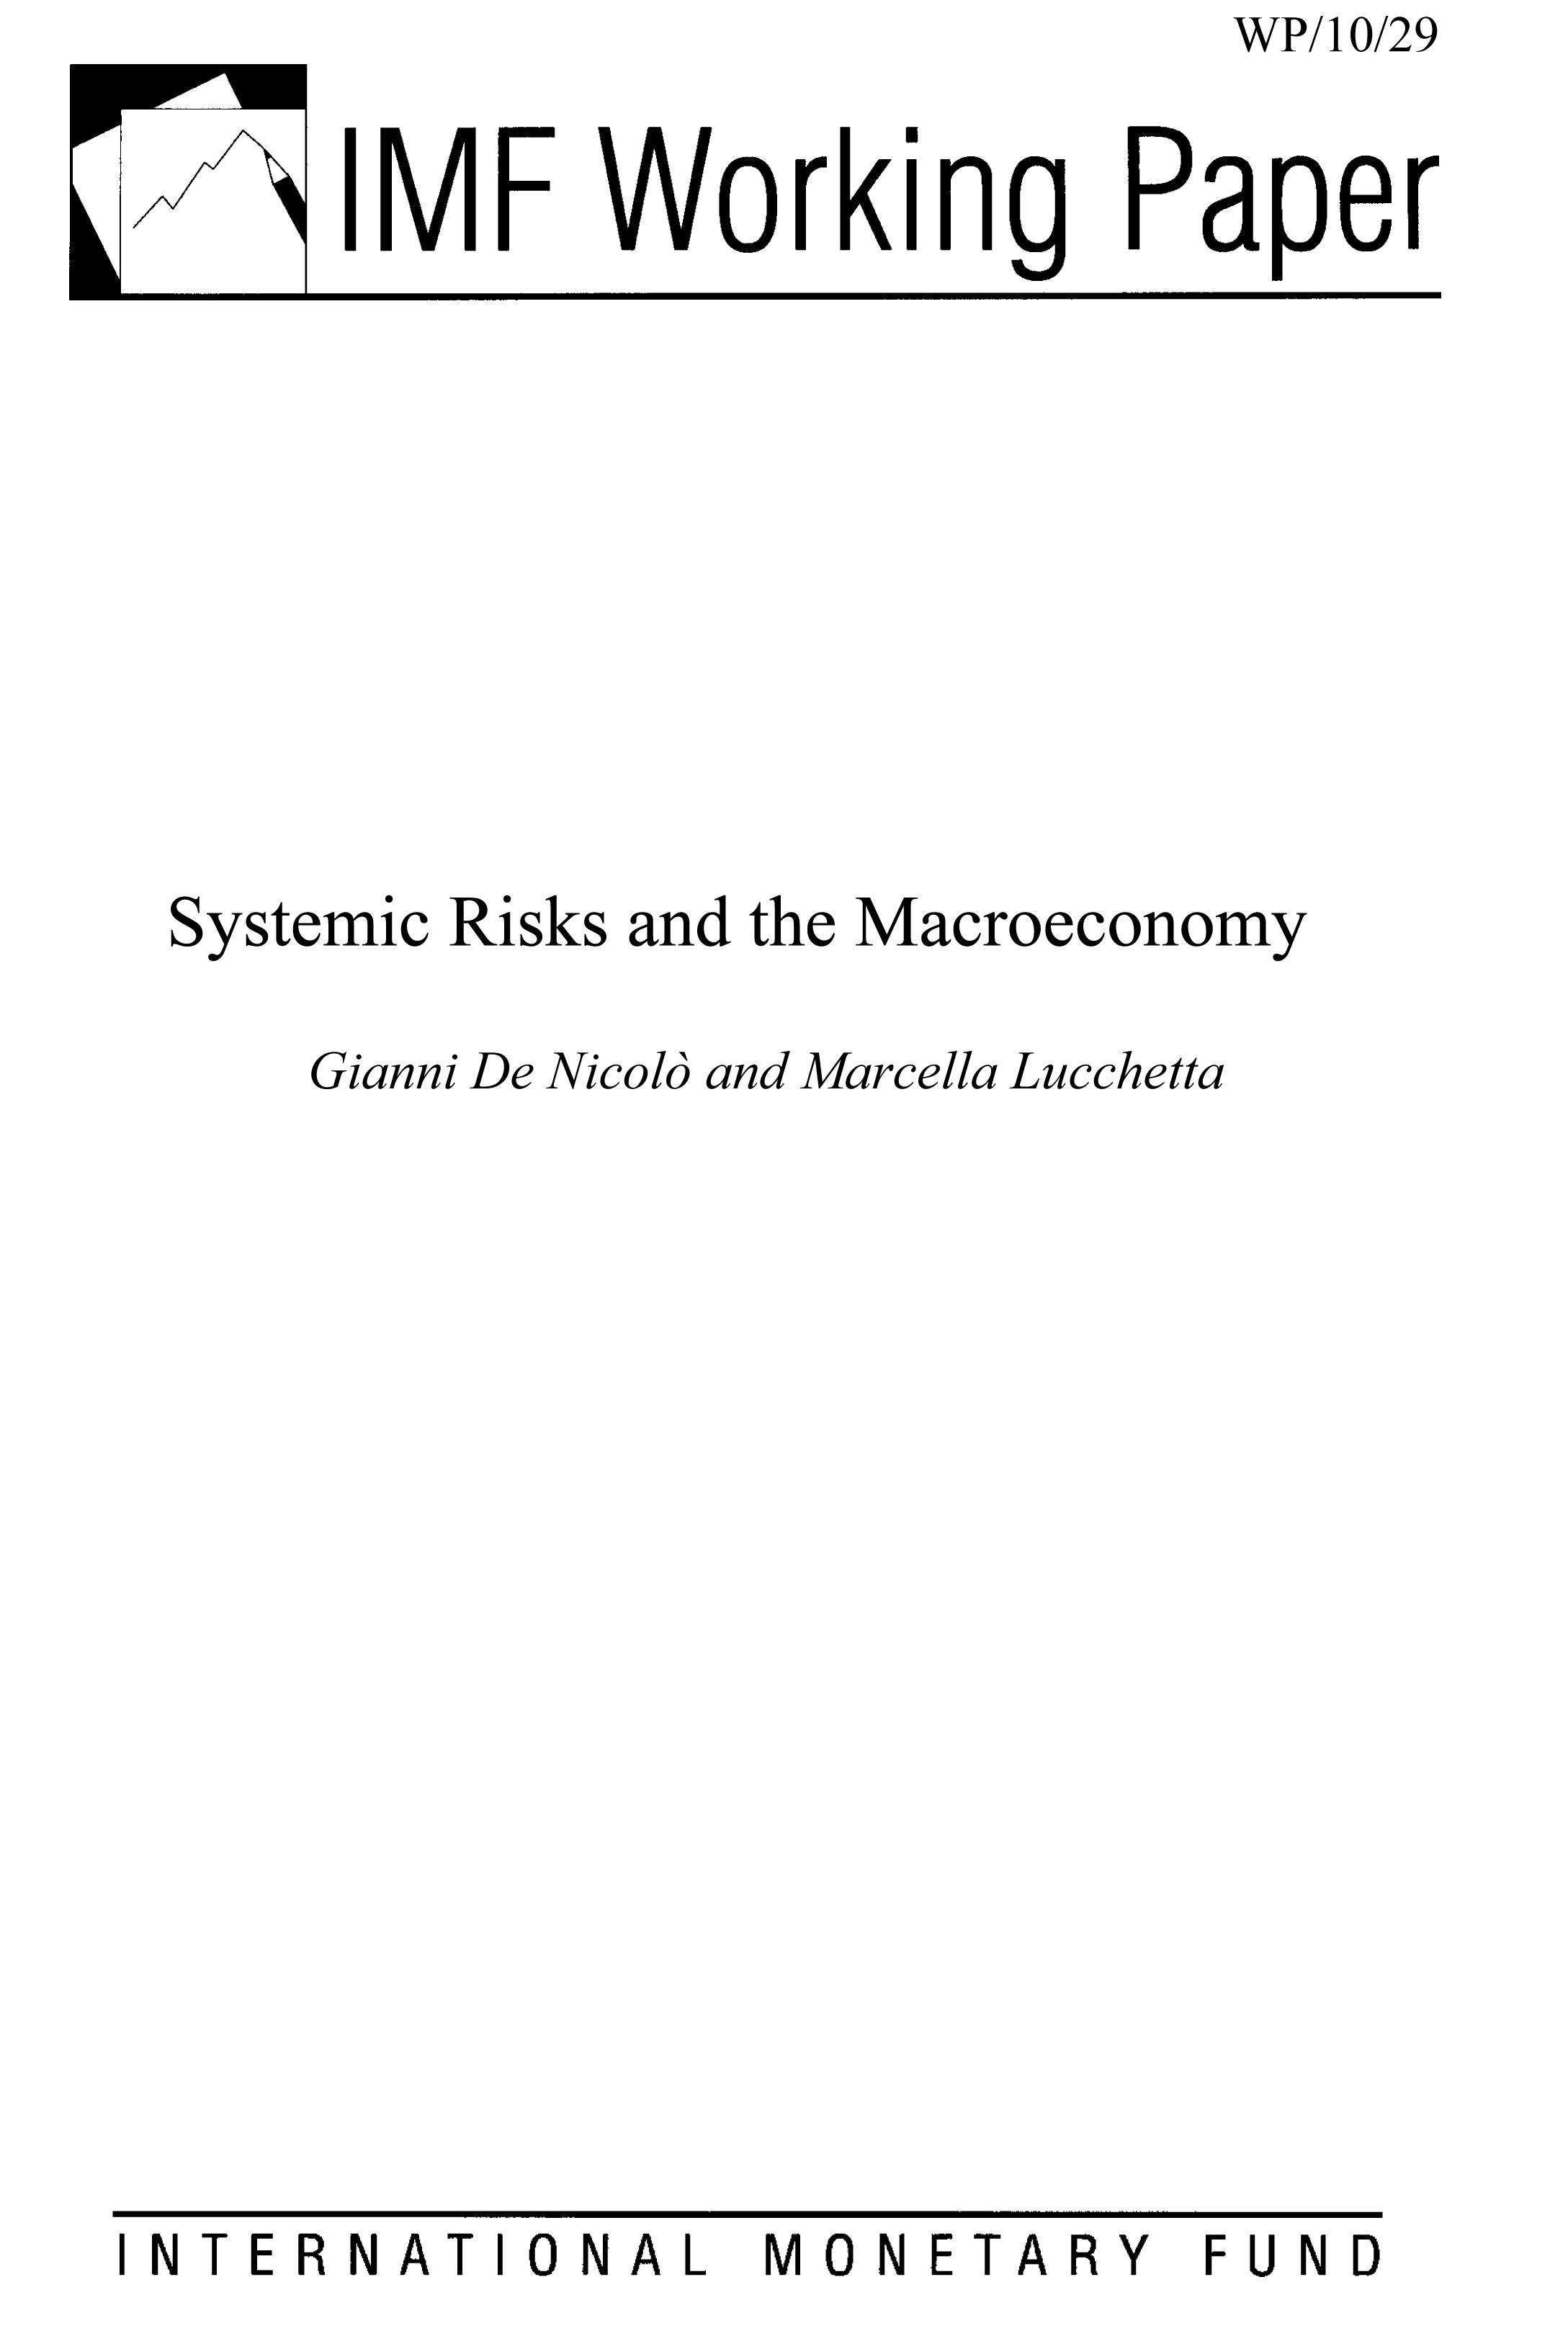 Systemic Risks and the Macroeconomy